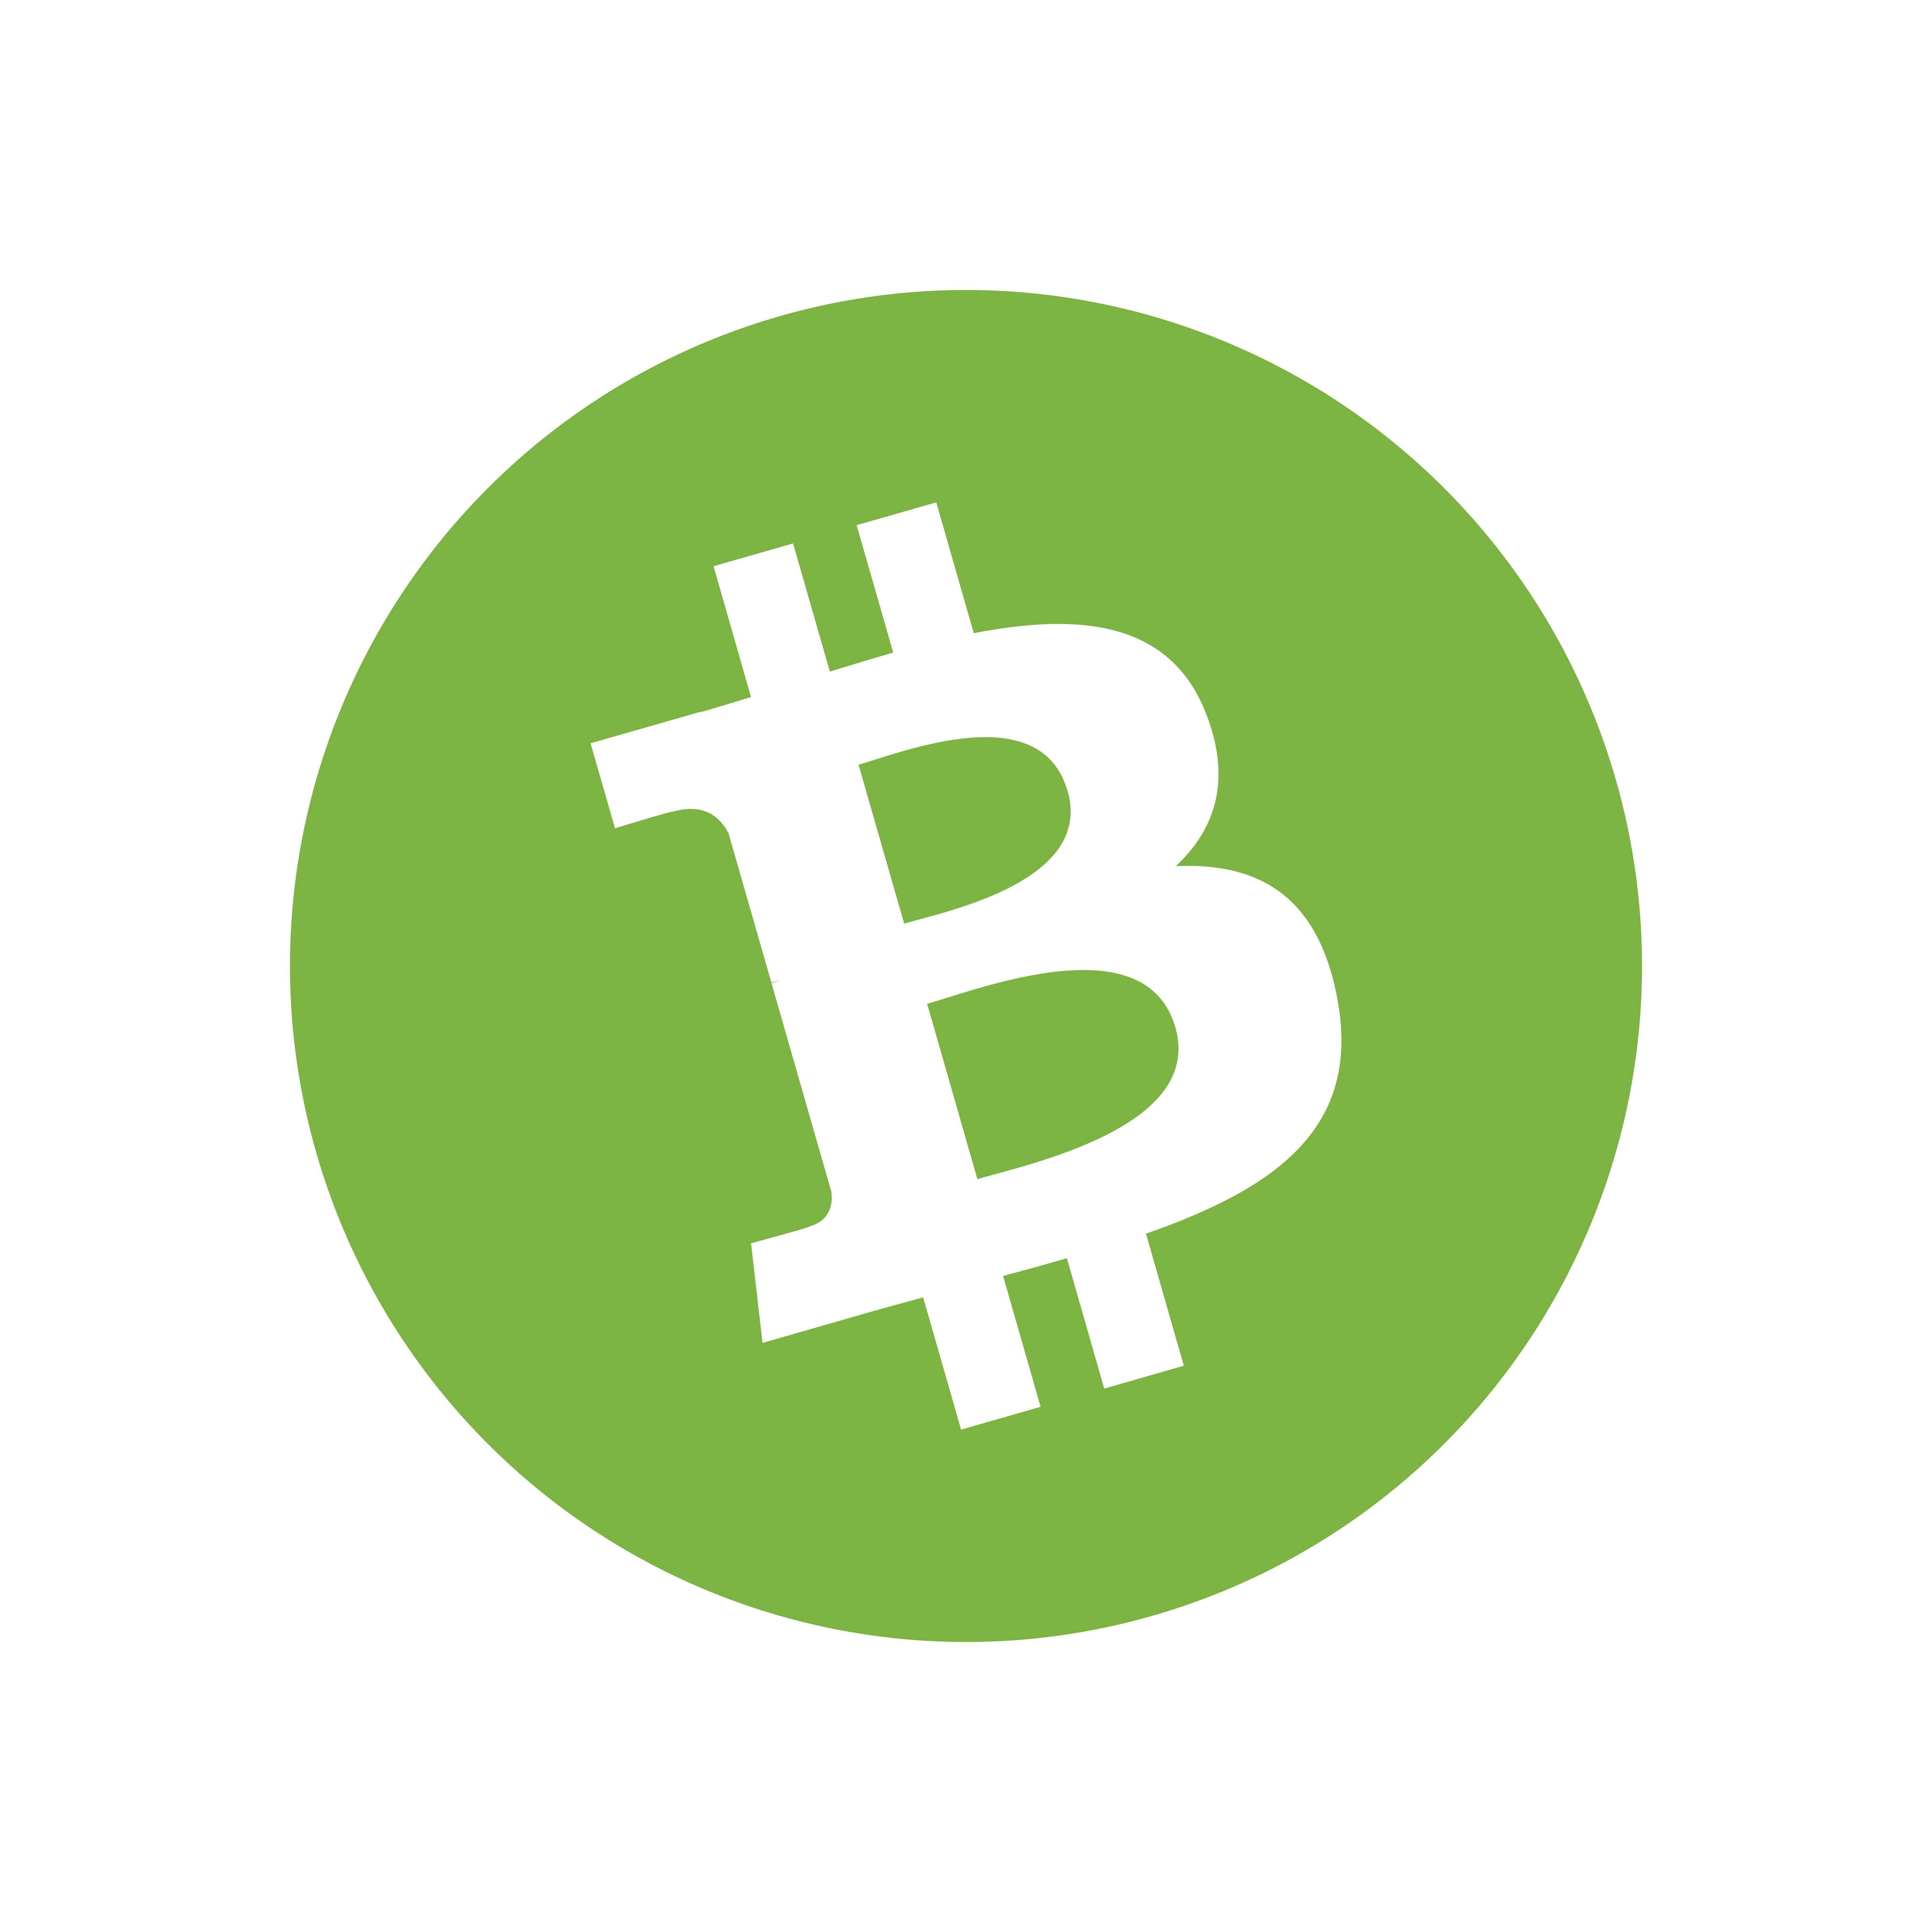 bitcoin cash logo 0 - Bitcoin Cash Logo